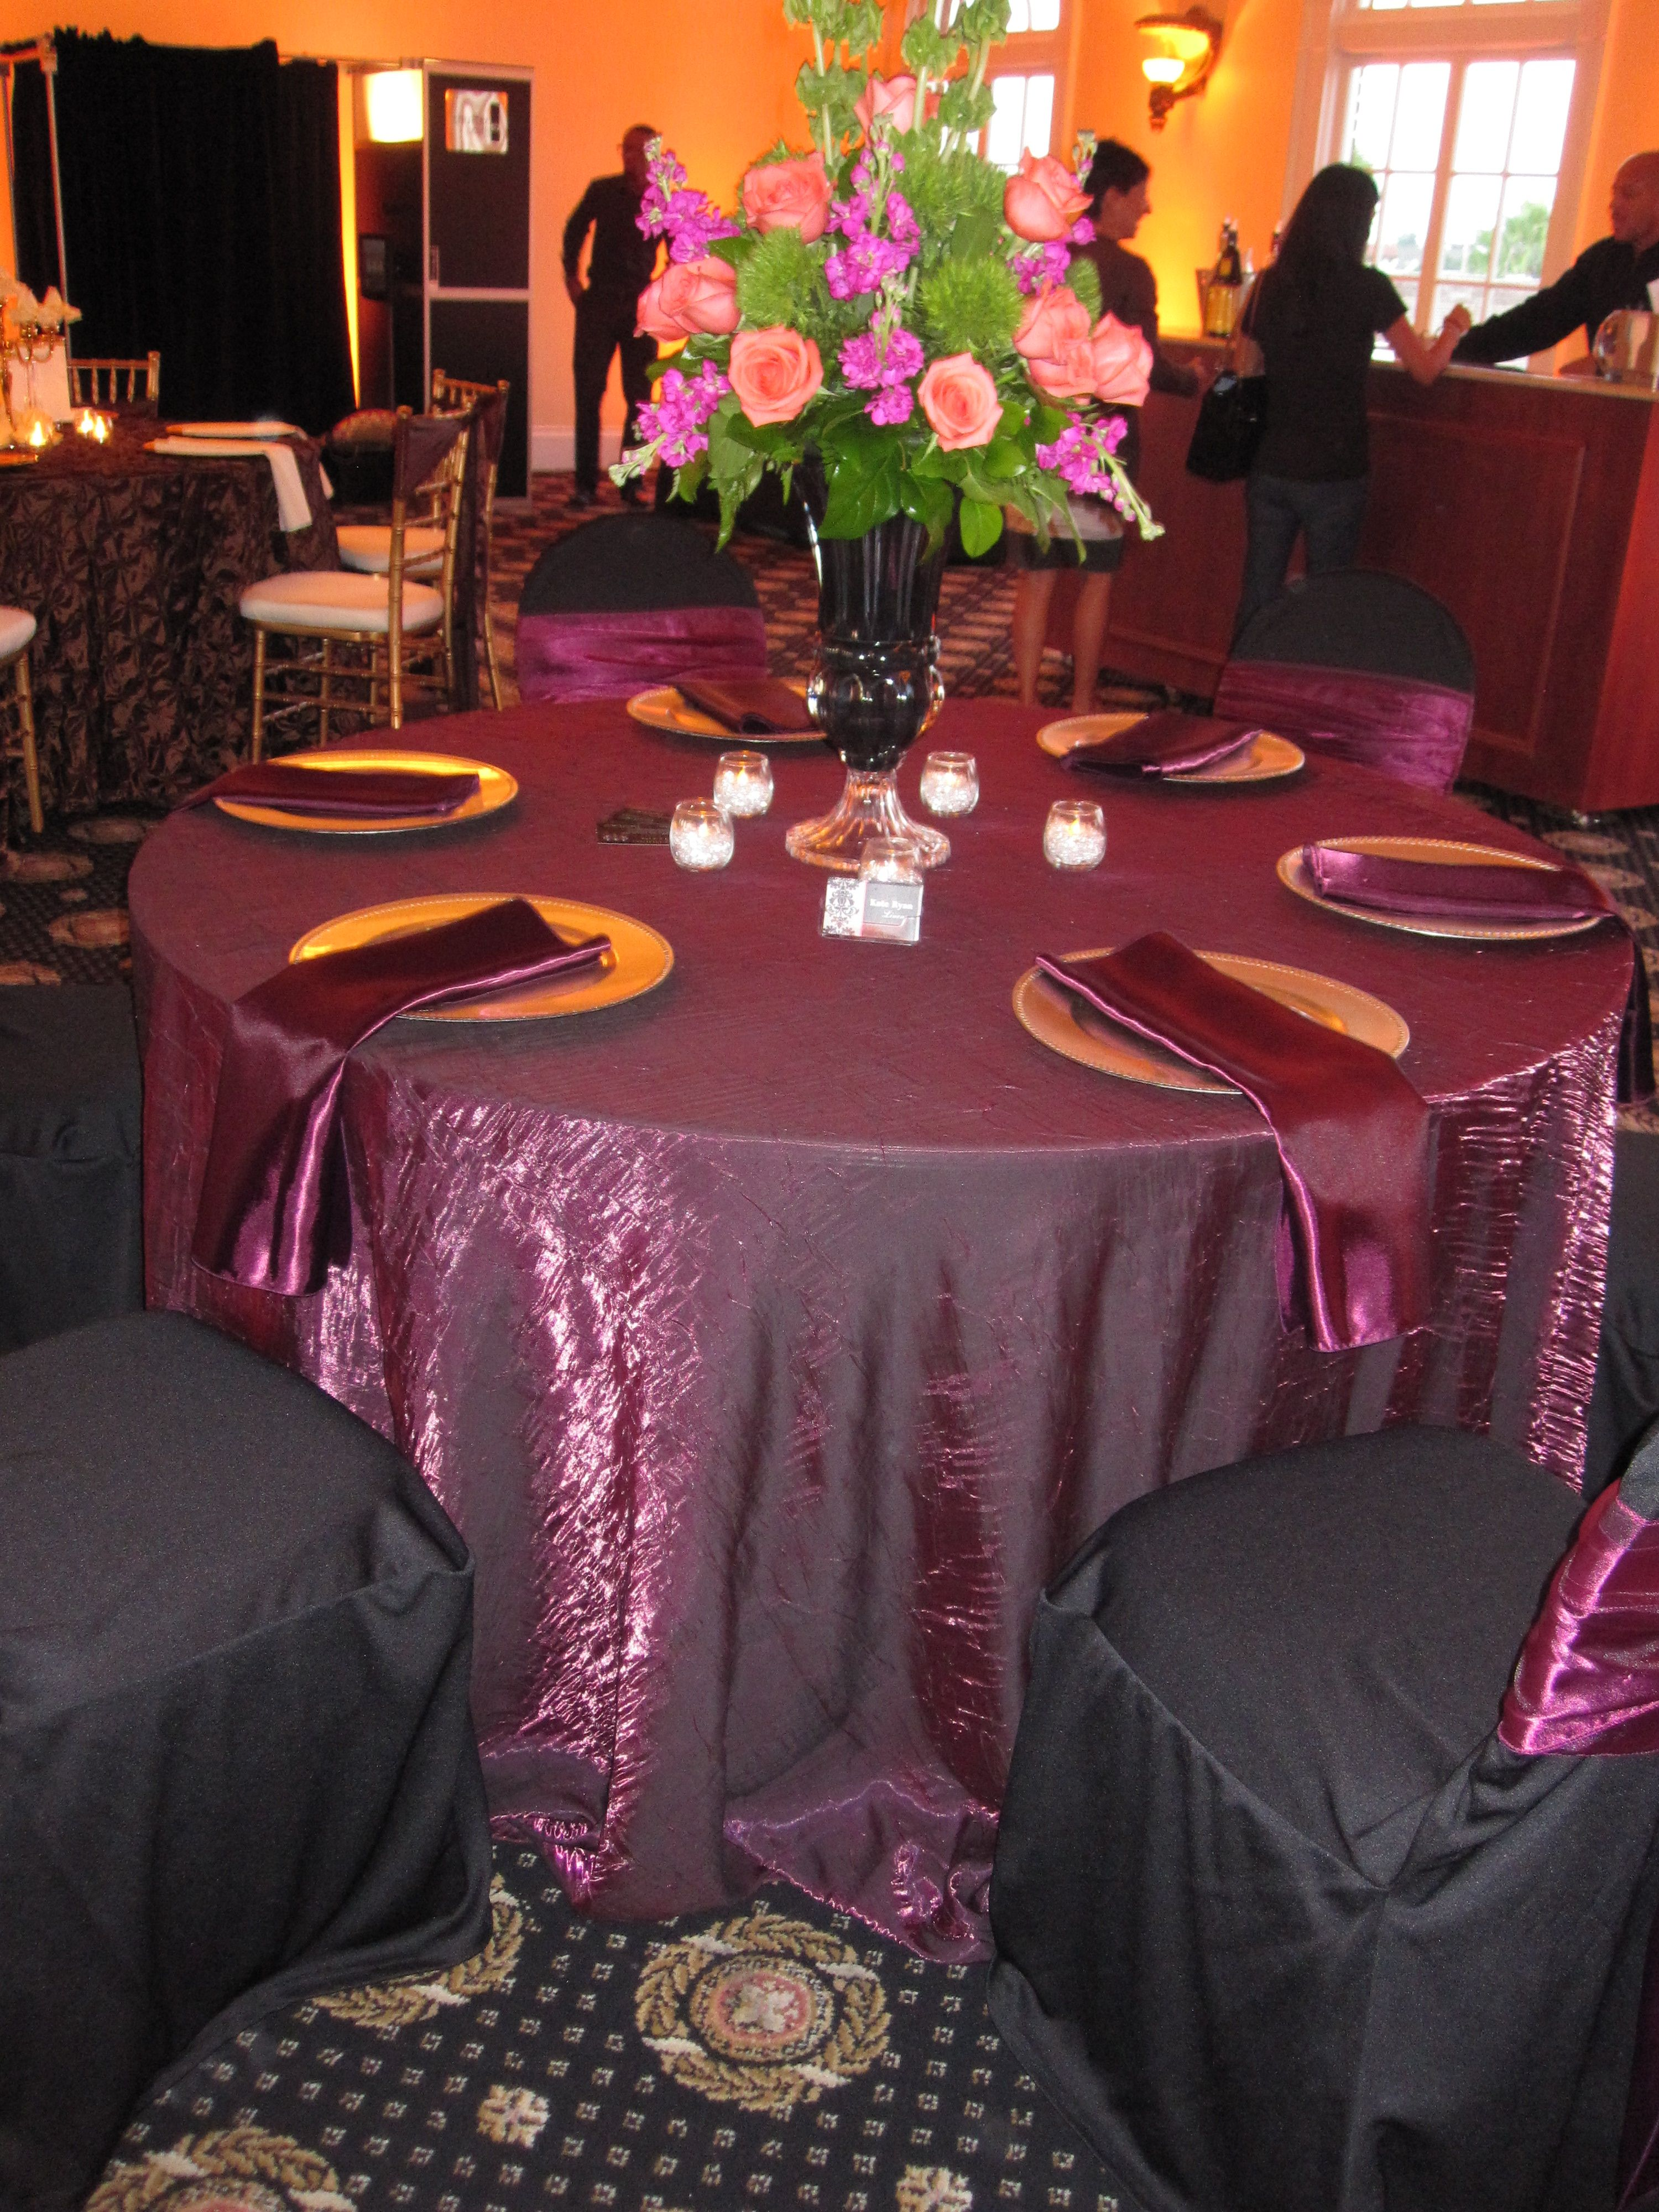 Wonderful Similar Linens But With Silver Charger?Wildberry Sangria Iridescent Crush  Tablecloths With Plum Satin Napkins